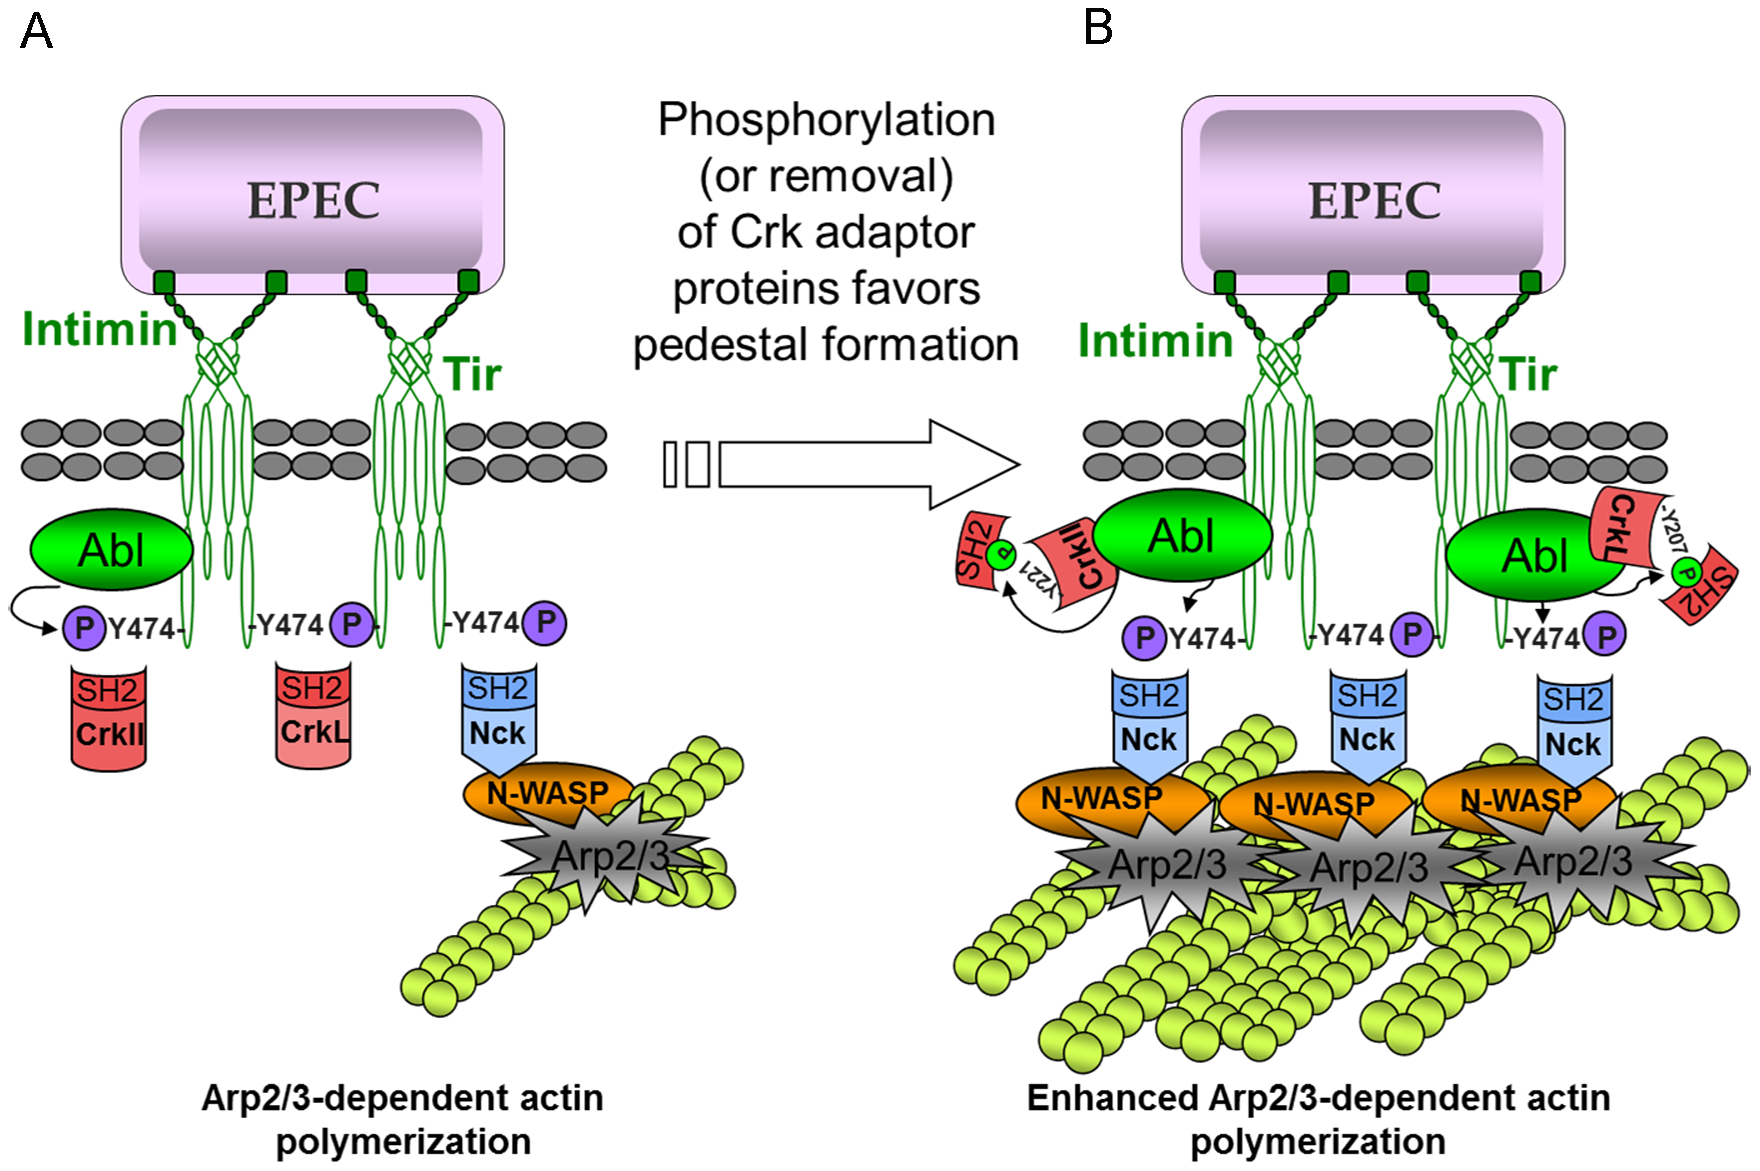 Model of the mechanism of action of Crk adaptor proteins in pedestal formation.